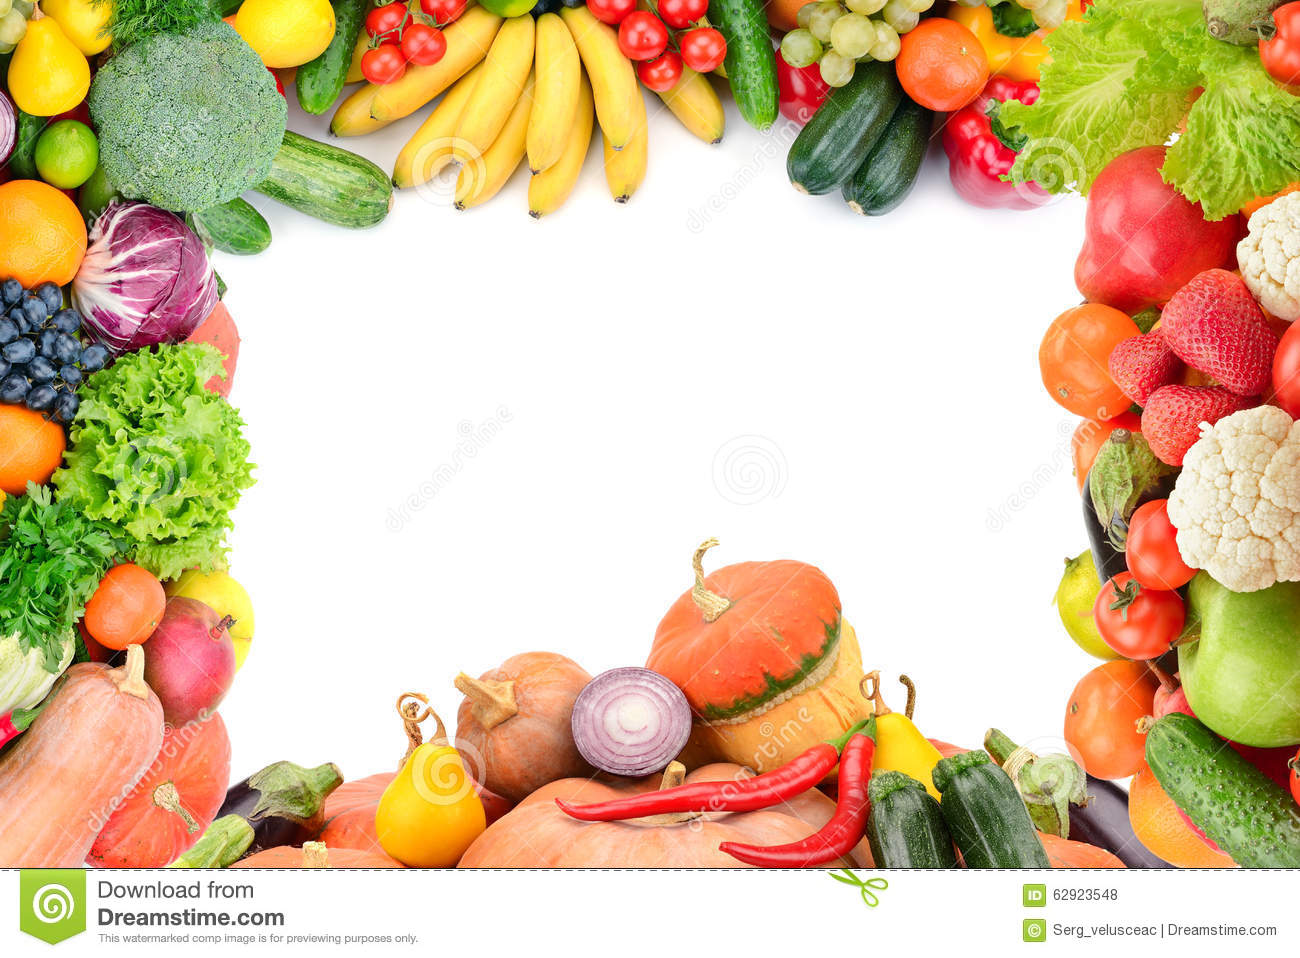 Autumn Tree Leaf Fall Animated Wallpaper Frame Of Vegetables And Fruits Stock Photo Image Of